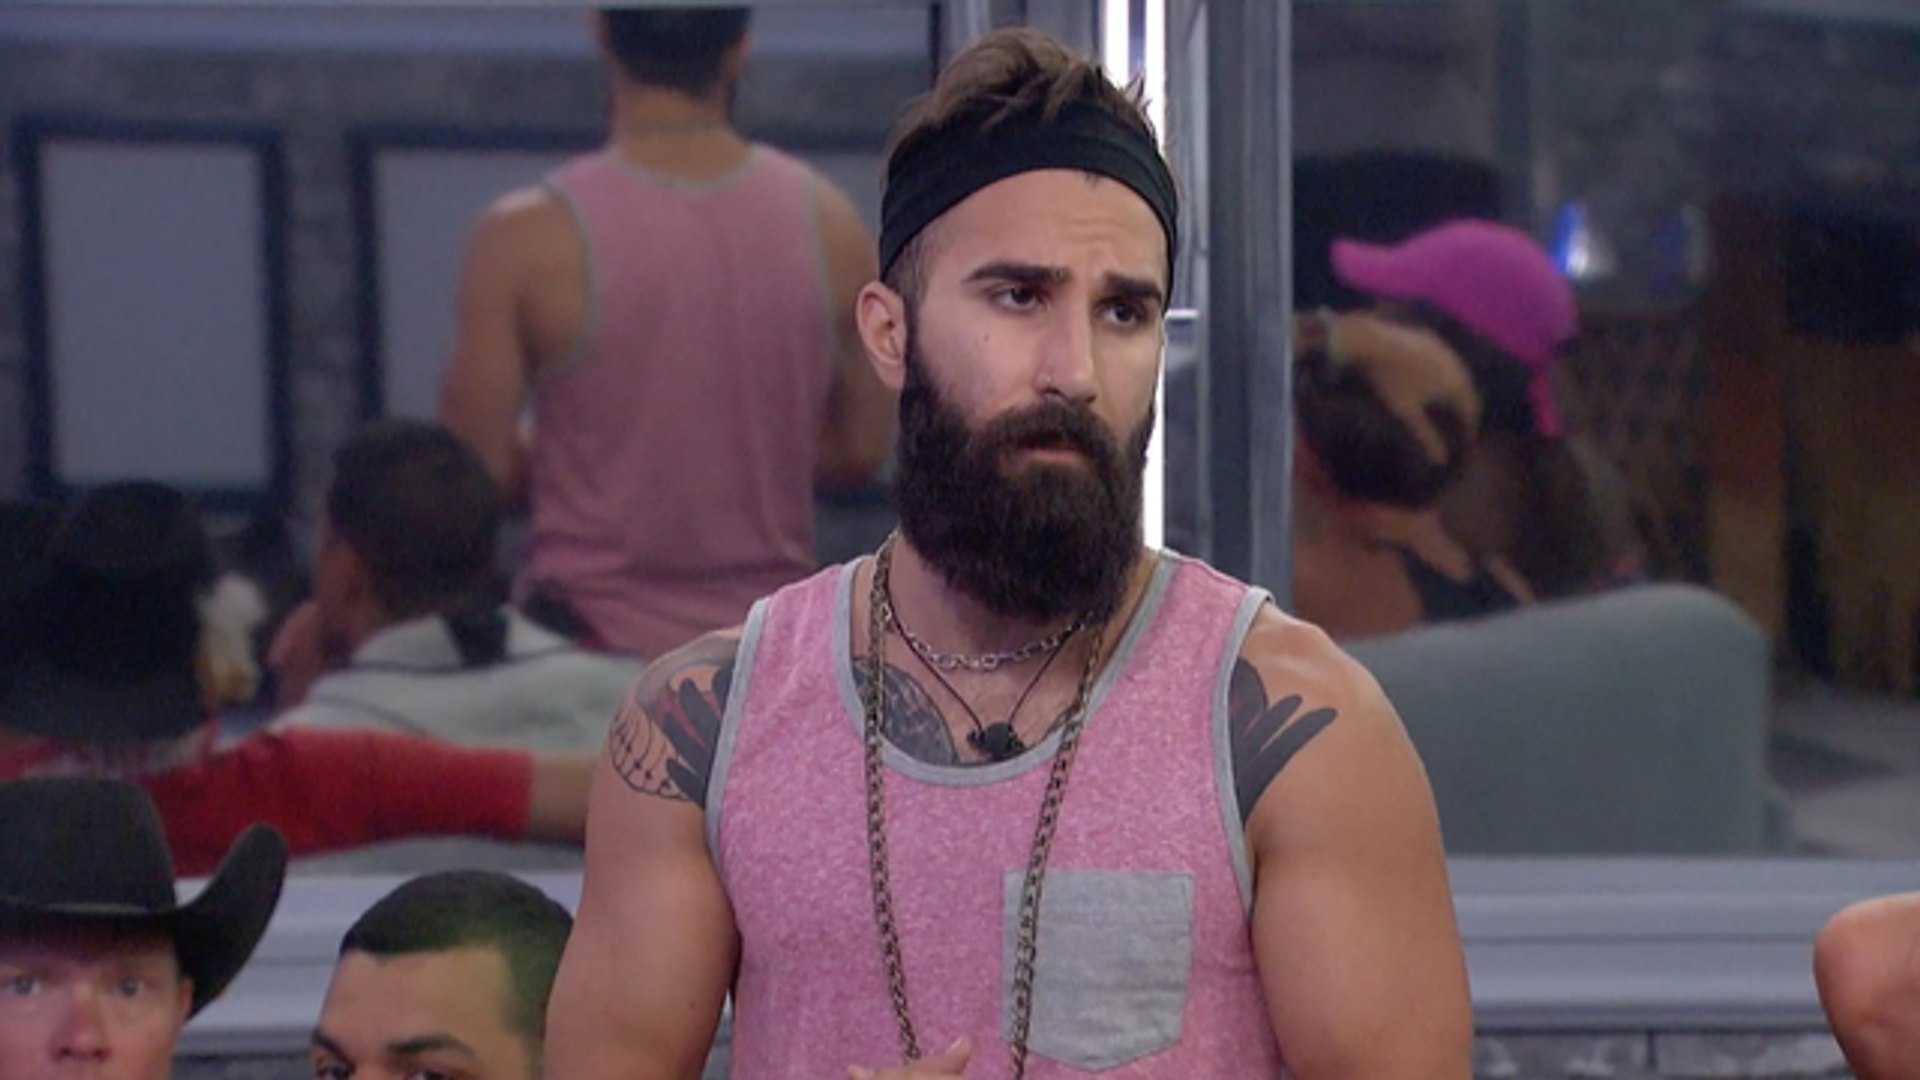 Big Brother - Jaws Drop When Paul Reveals His Pendant Of Protection On Big Brother